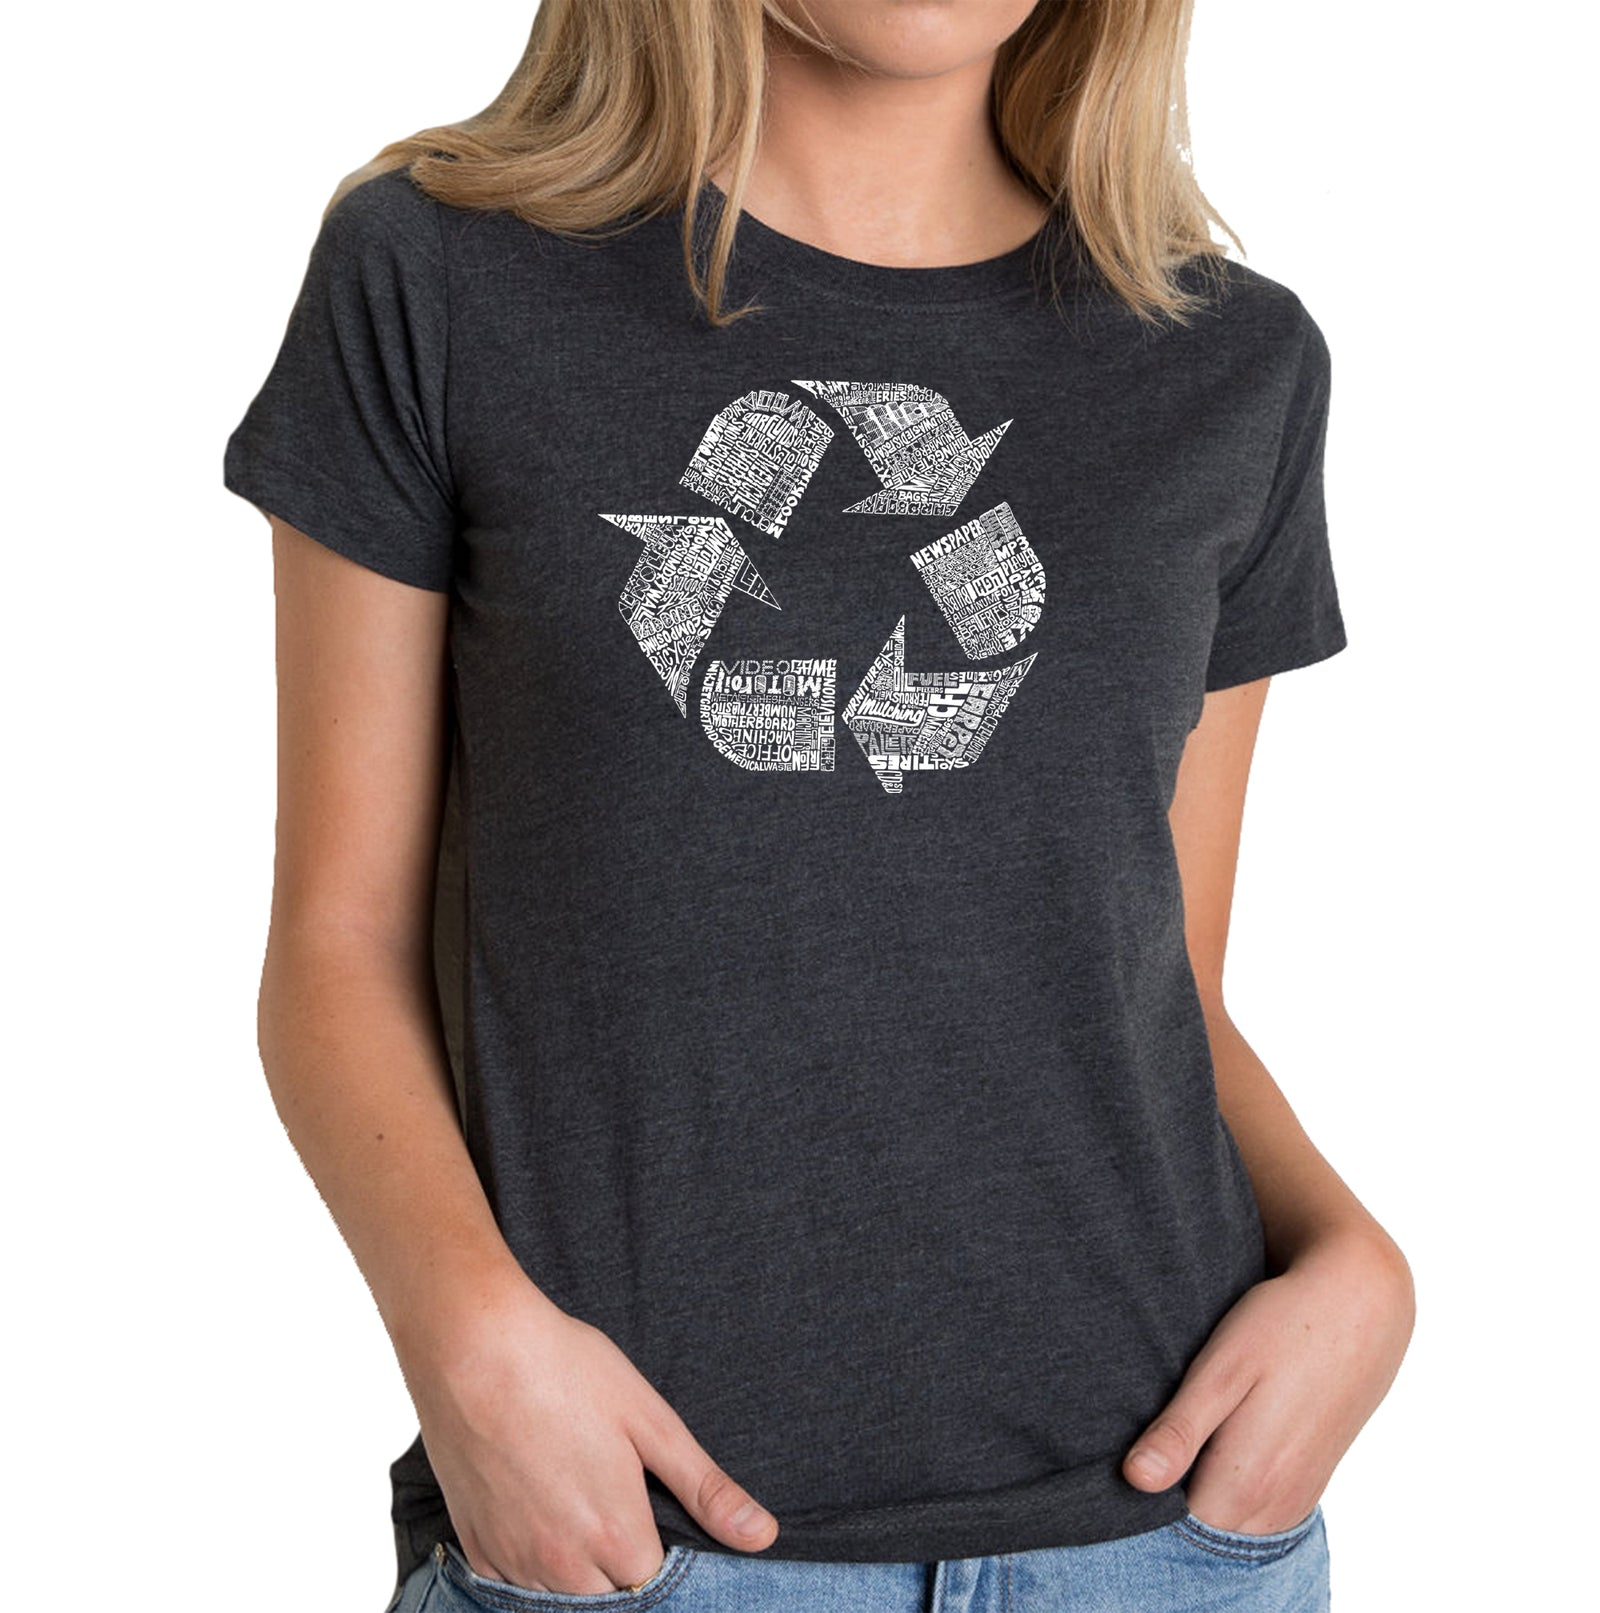 Women's Premium Blend Word Art T-shirt - 86 RECYCLABLE PRODUCTS